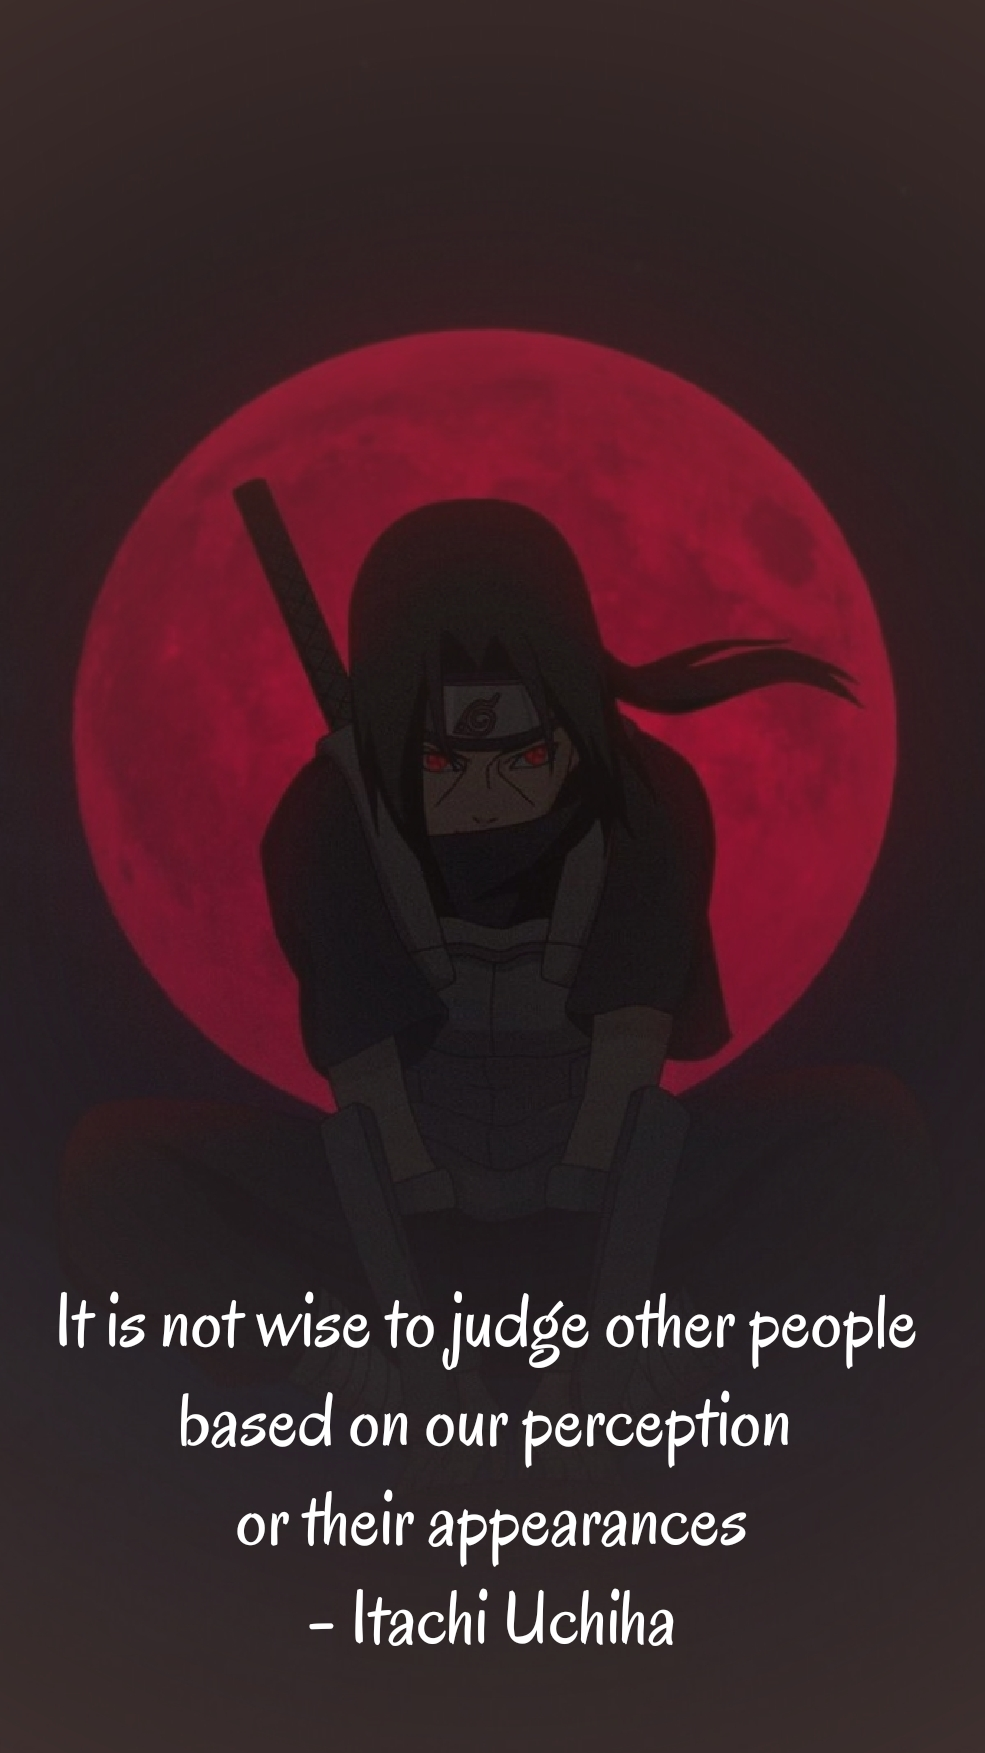 """ It is not wise to judge other people based on our perception or their appearances "" – Itachi Uchiha [985 × 1753]"